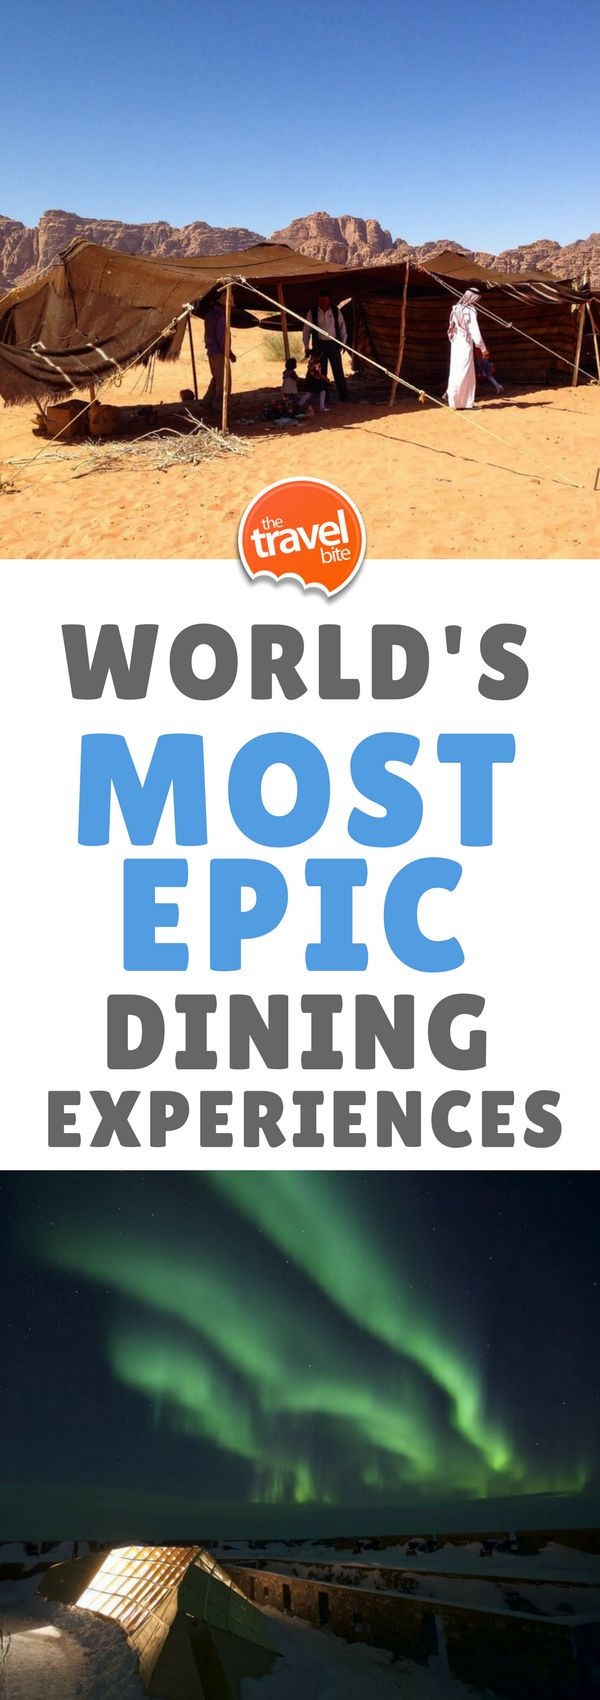 7 Of The Most Epic Dining Experiences In The World ~ https://thetravelbite.com